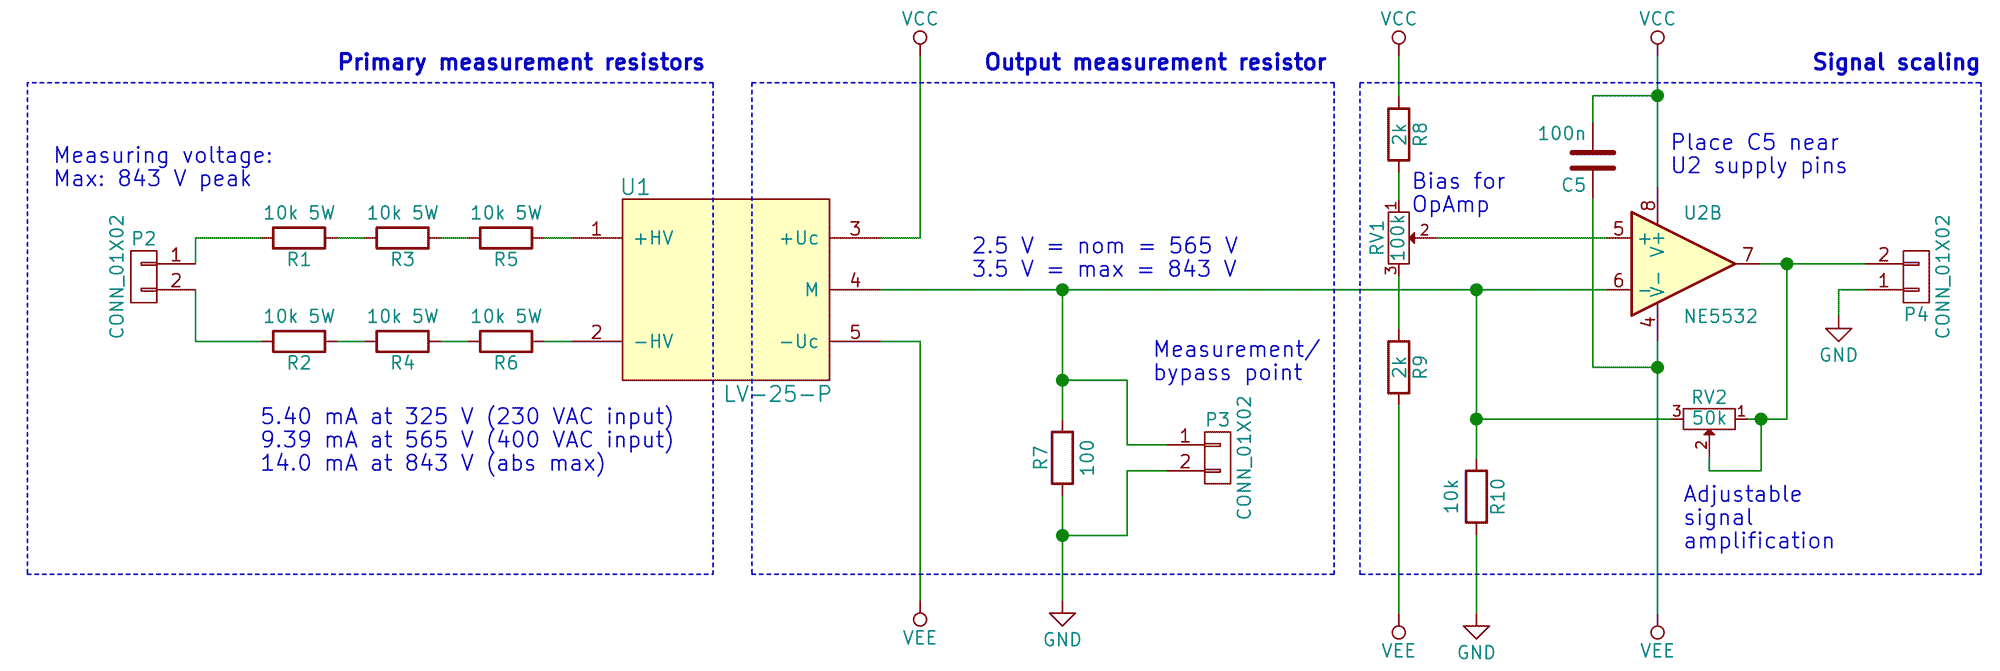 The signal path from left to right:  Main voltage connection, step-down resistors, voltage sensor (U1), measurement resistor, opamp with potmeter for bias and scaling. The last plug is the output to ADC.